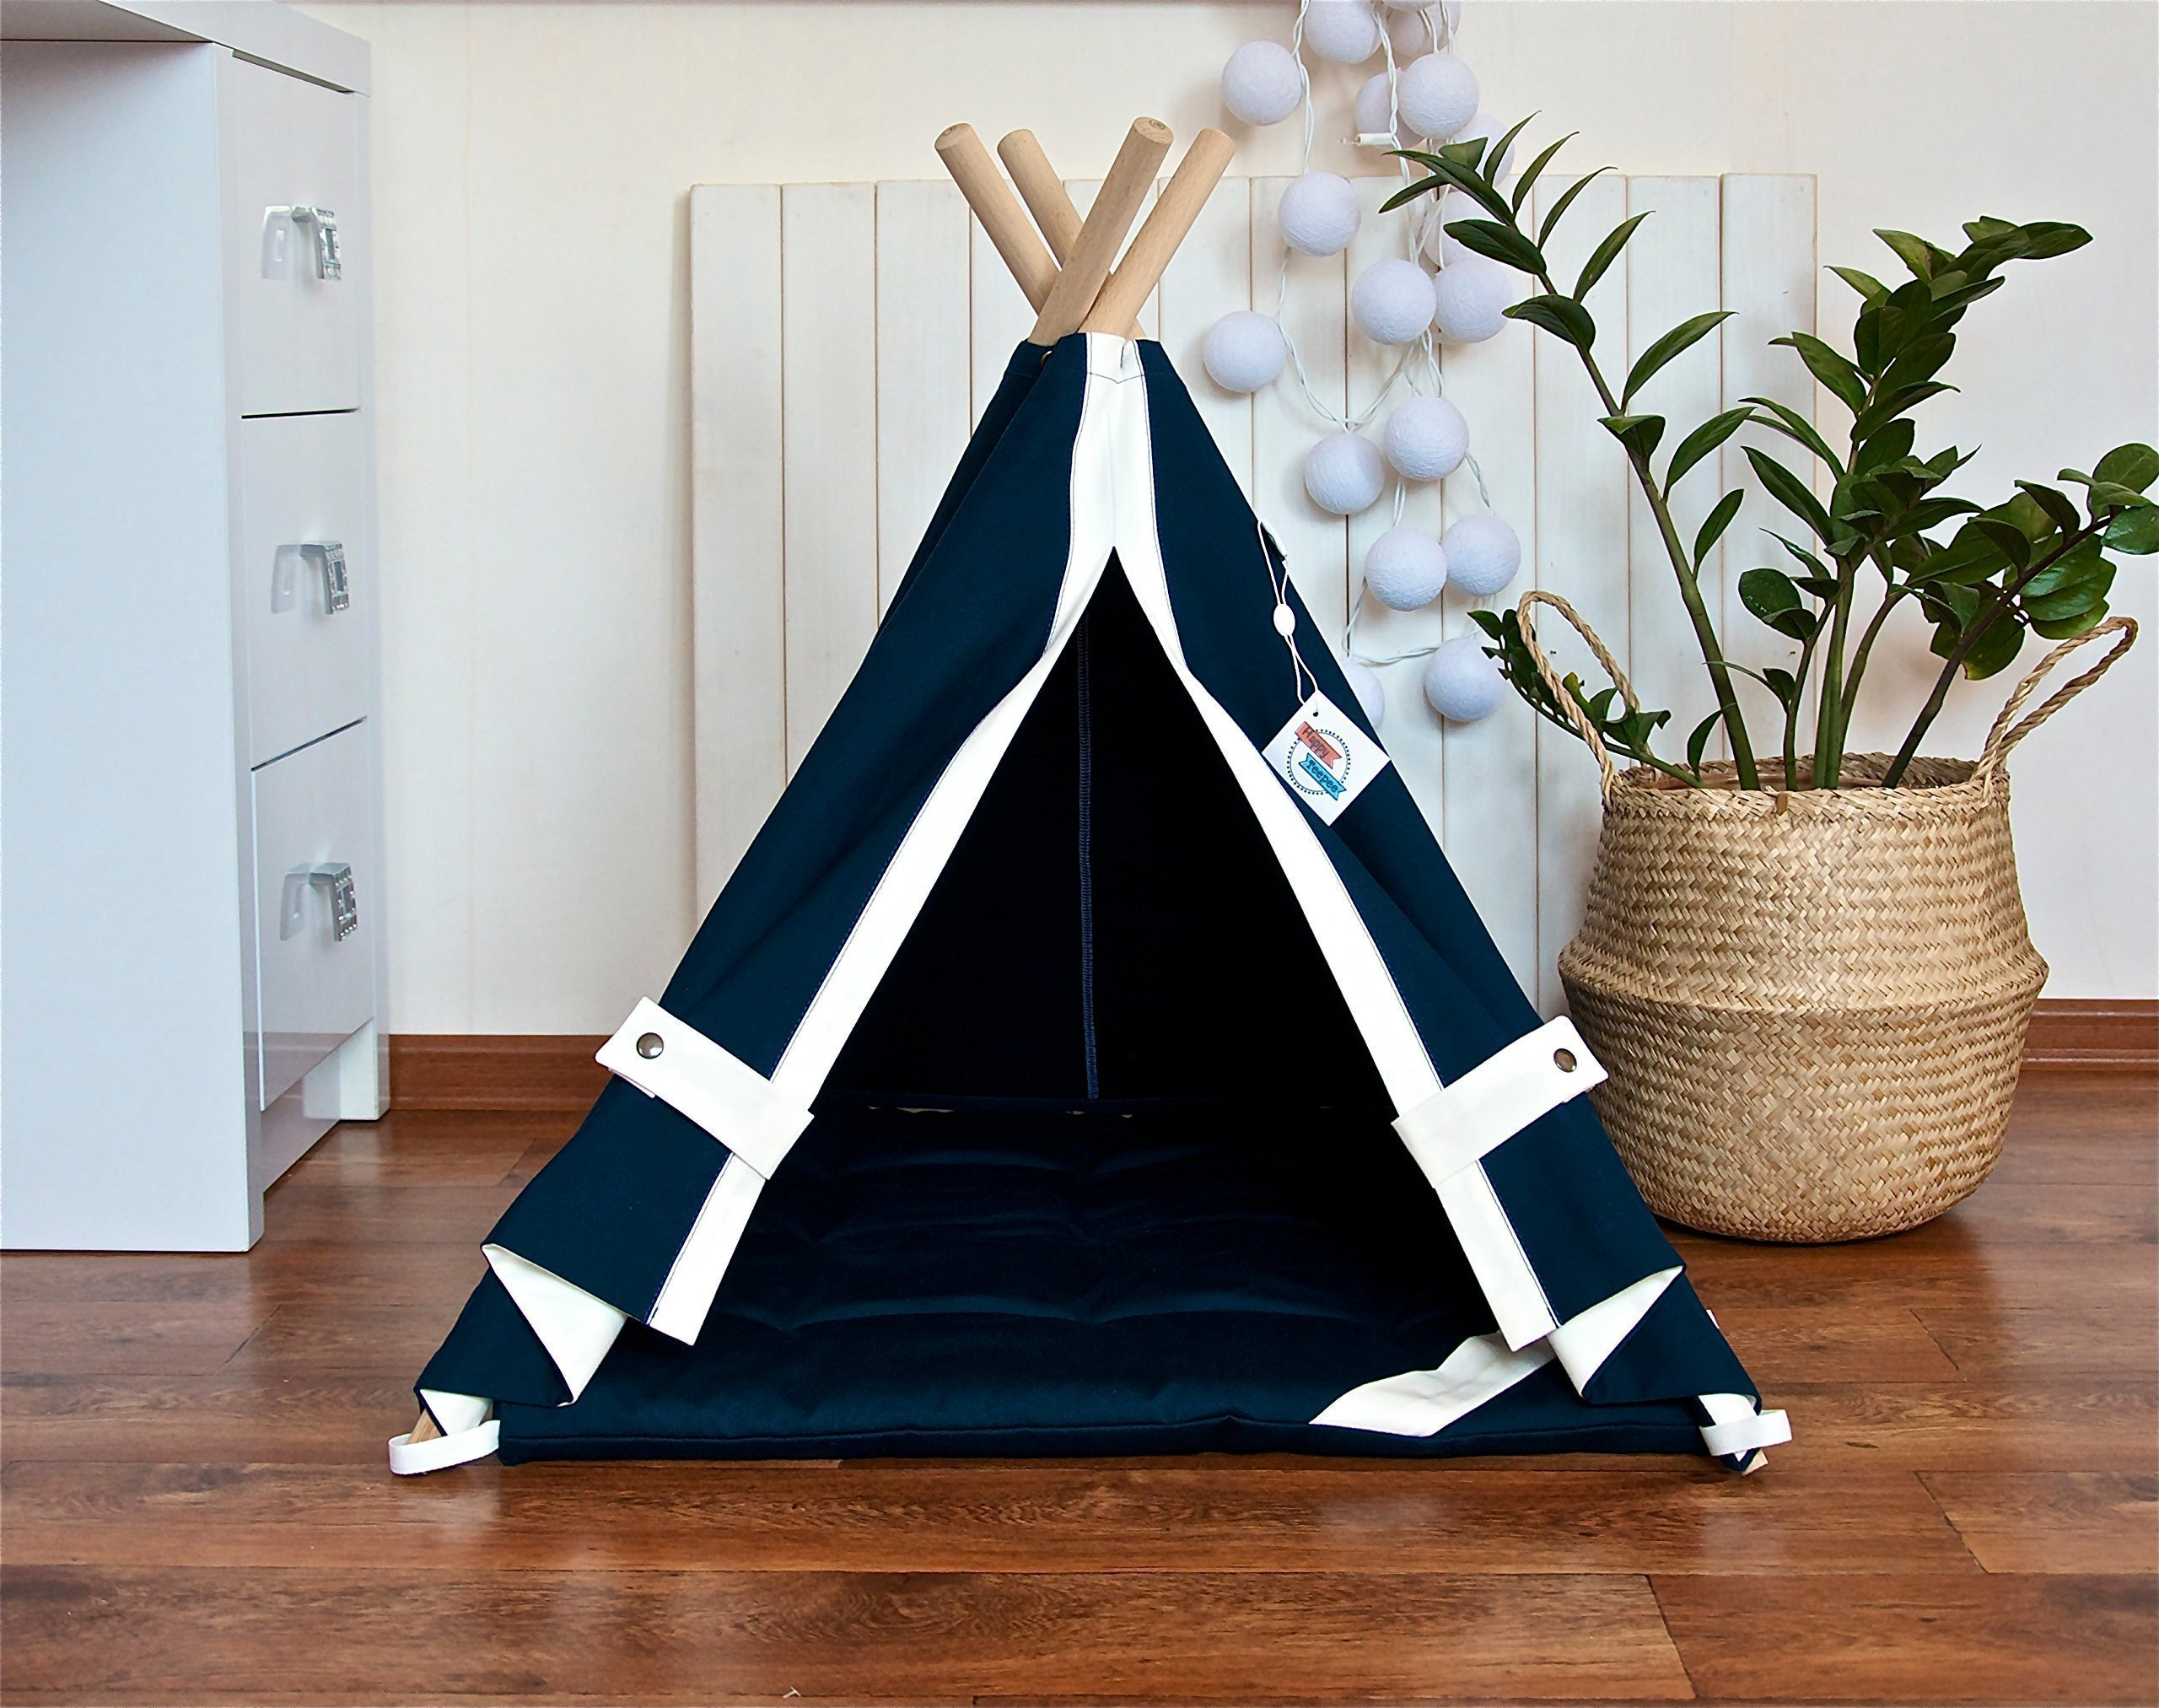 Happy Teepee dog teepee tent with cushion, dog teepee, dog bed, pet teepee tent, cat teepee, cat bed, cat teepee tent